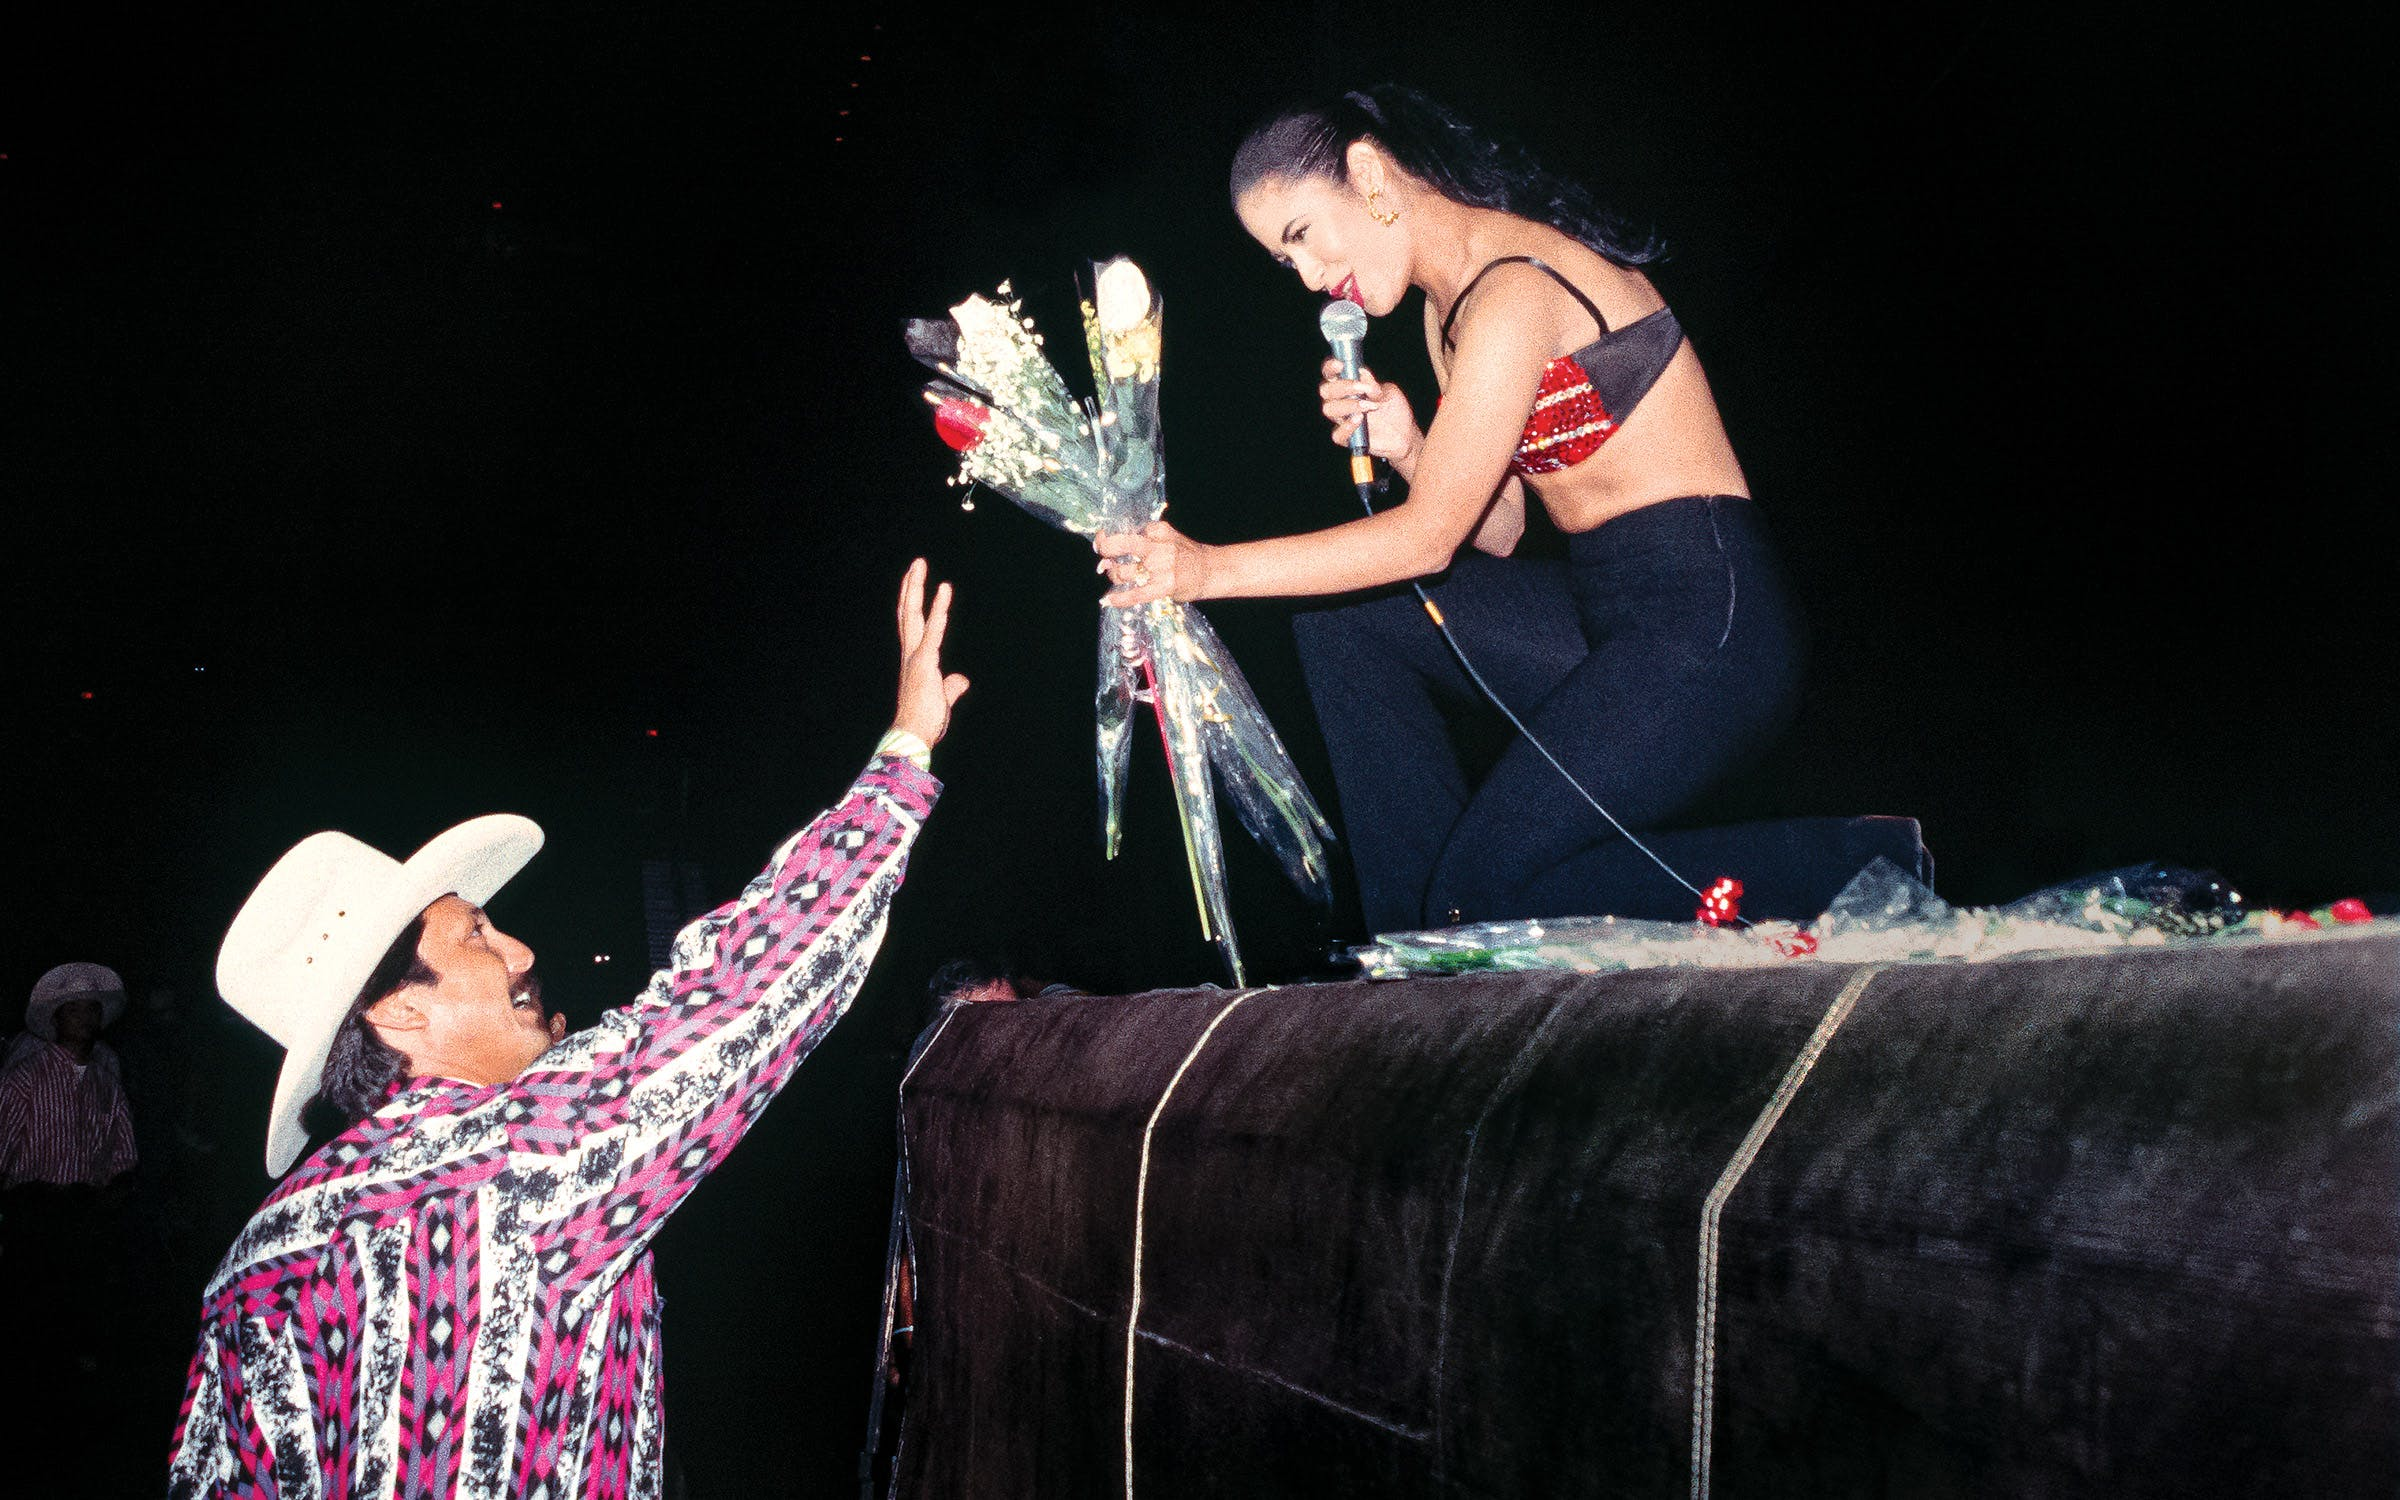 Selena accepting roses from a fan at the 1993 Tejano Music Awards in San Antonio